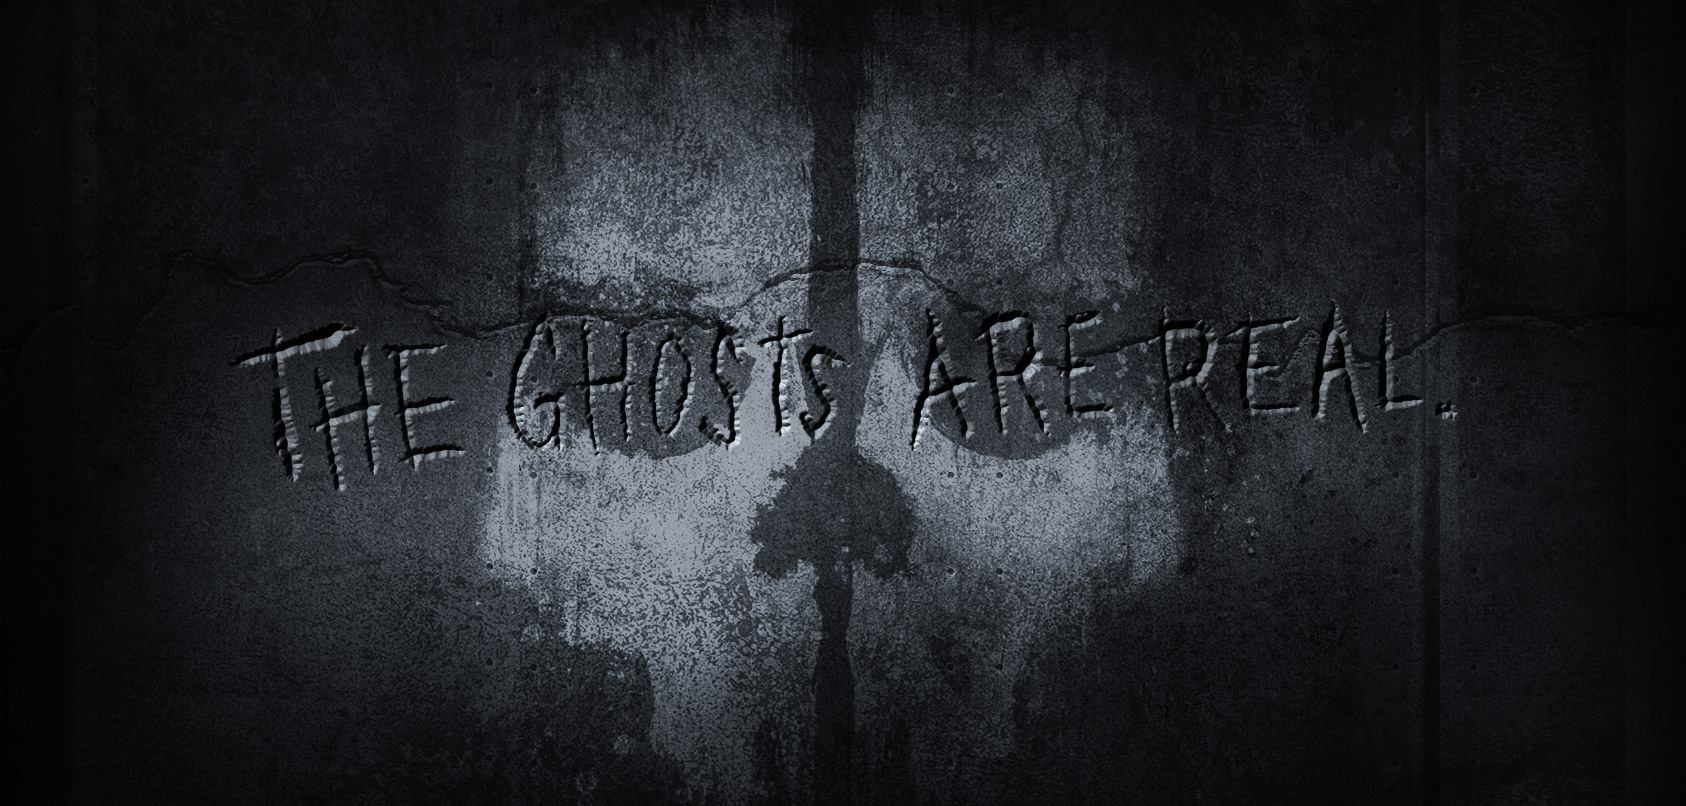 call of duty ghosts wallpaper and background 1686x806 id 447020. Black Bedroom Furniture Sets. Home Design Ideas